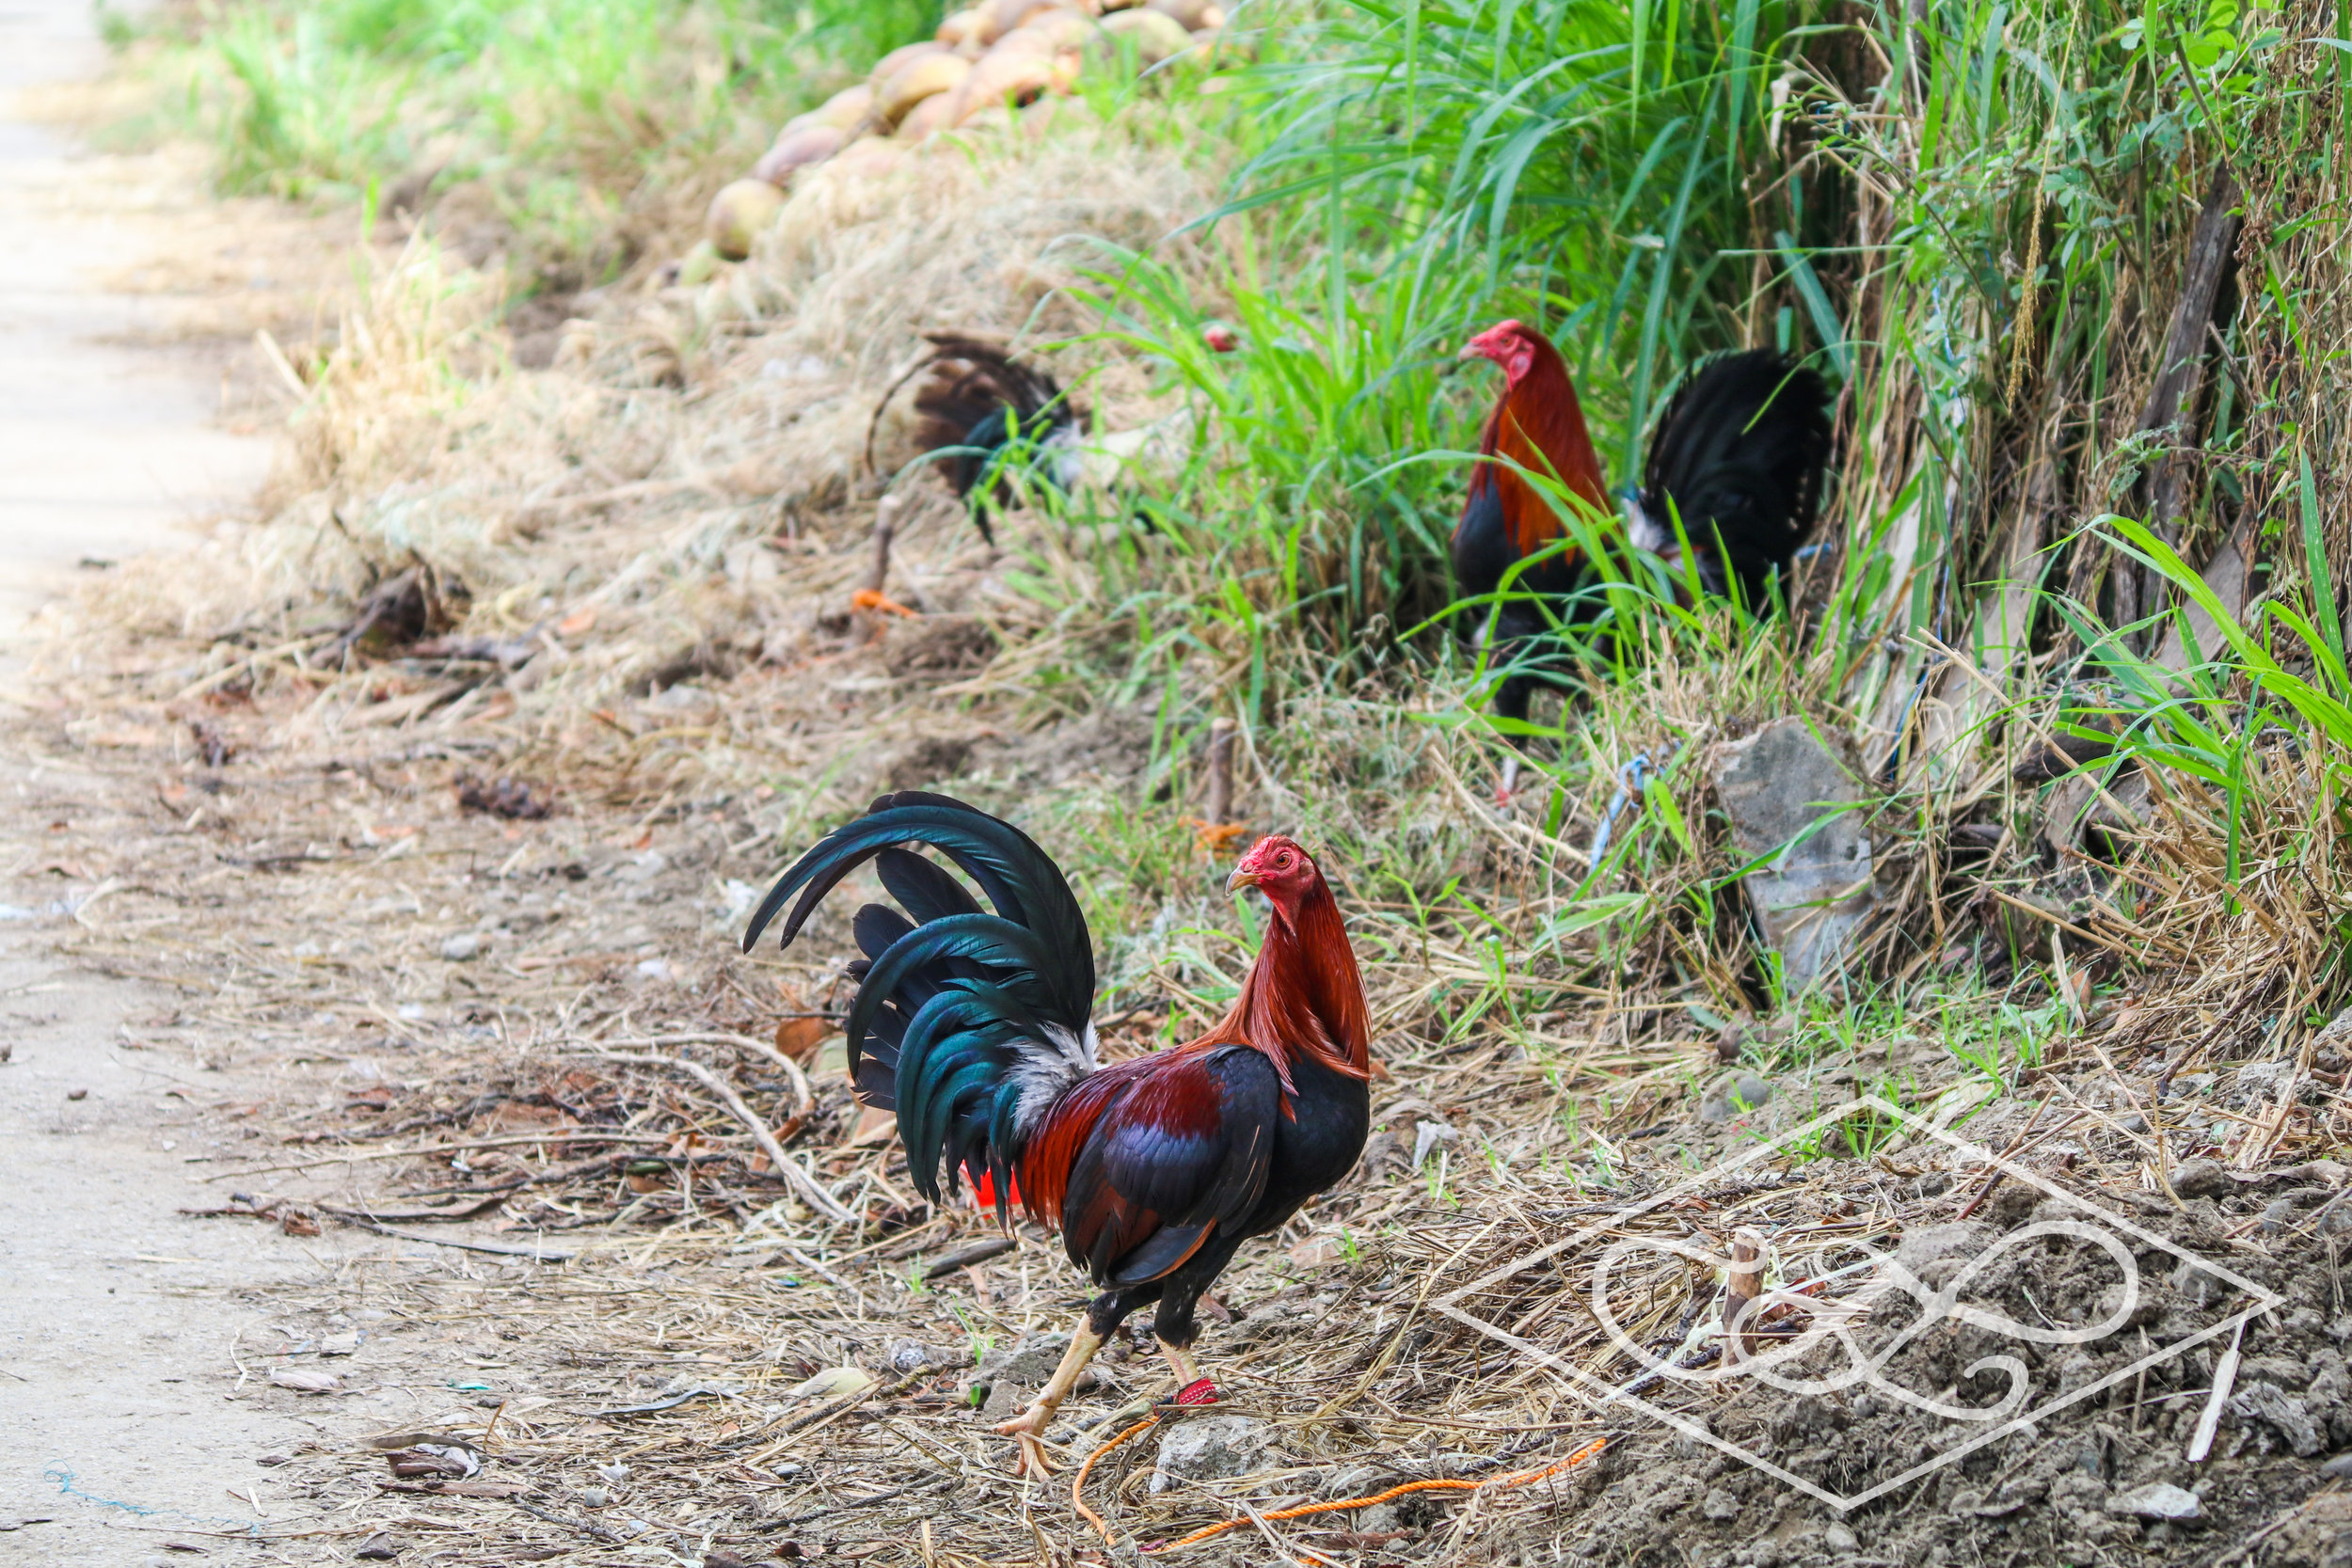 Rare sighting of a rooster walking freely